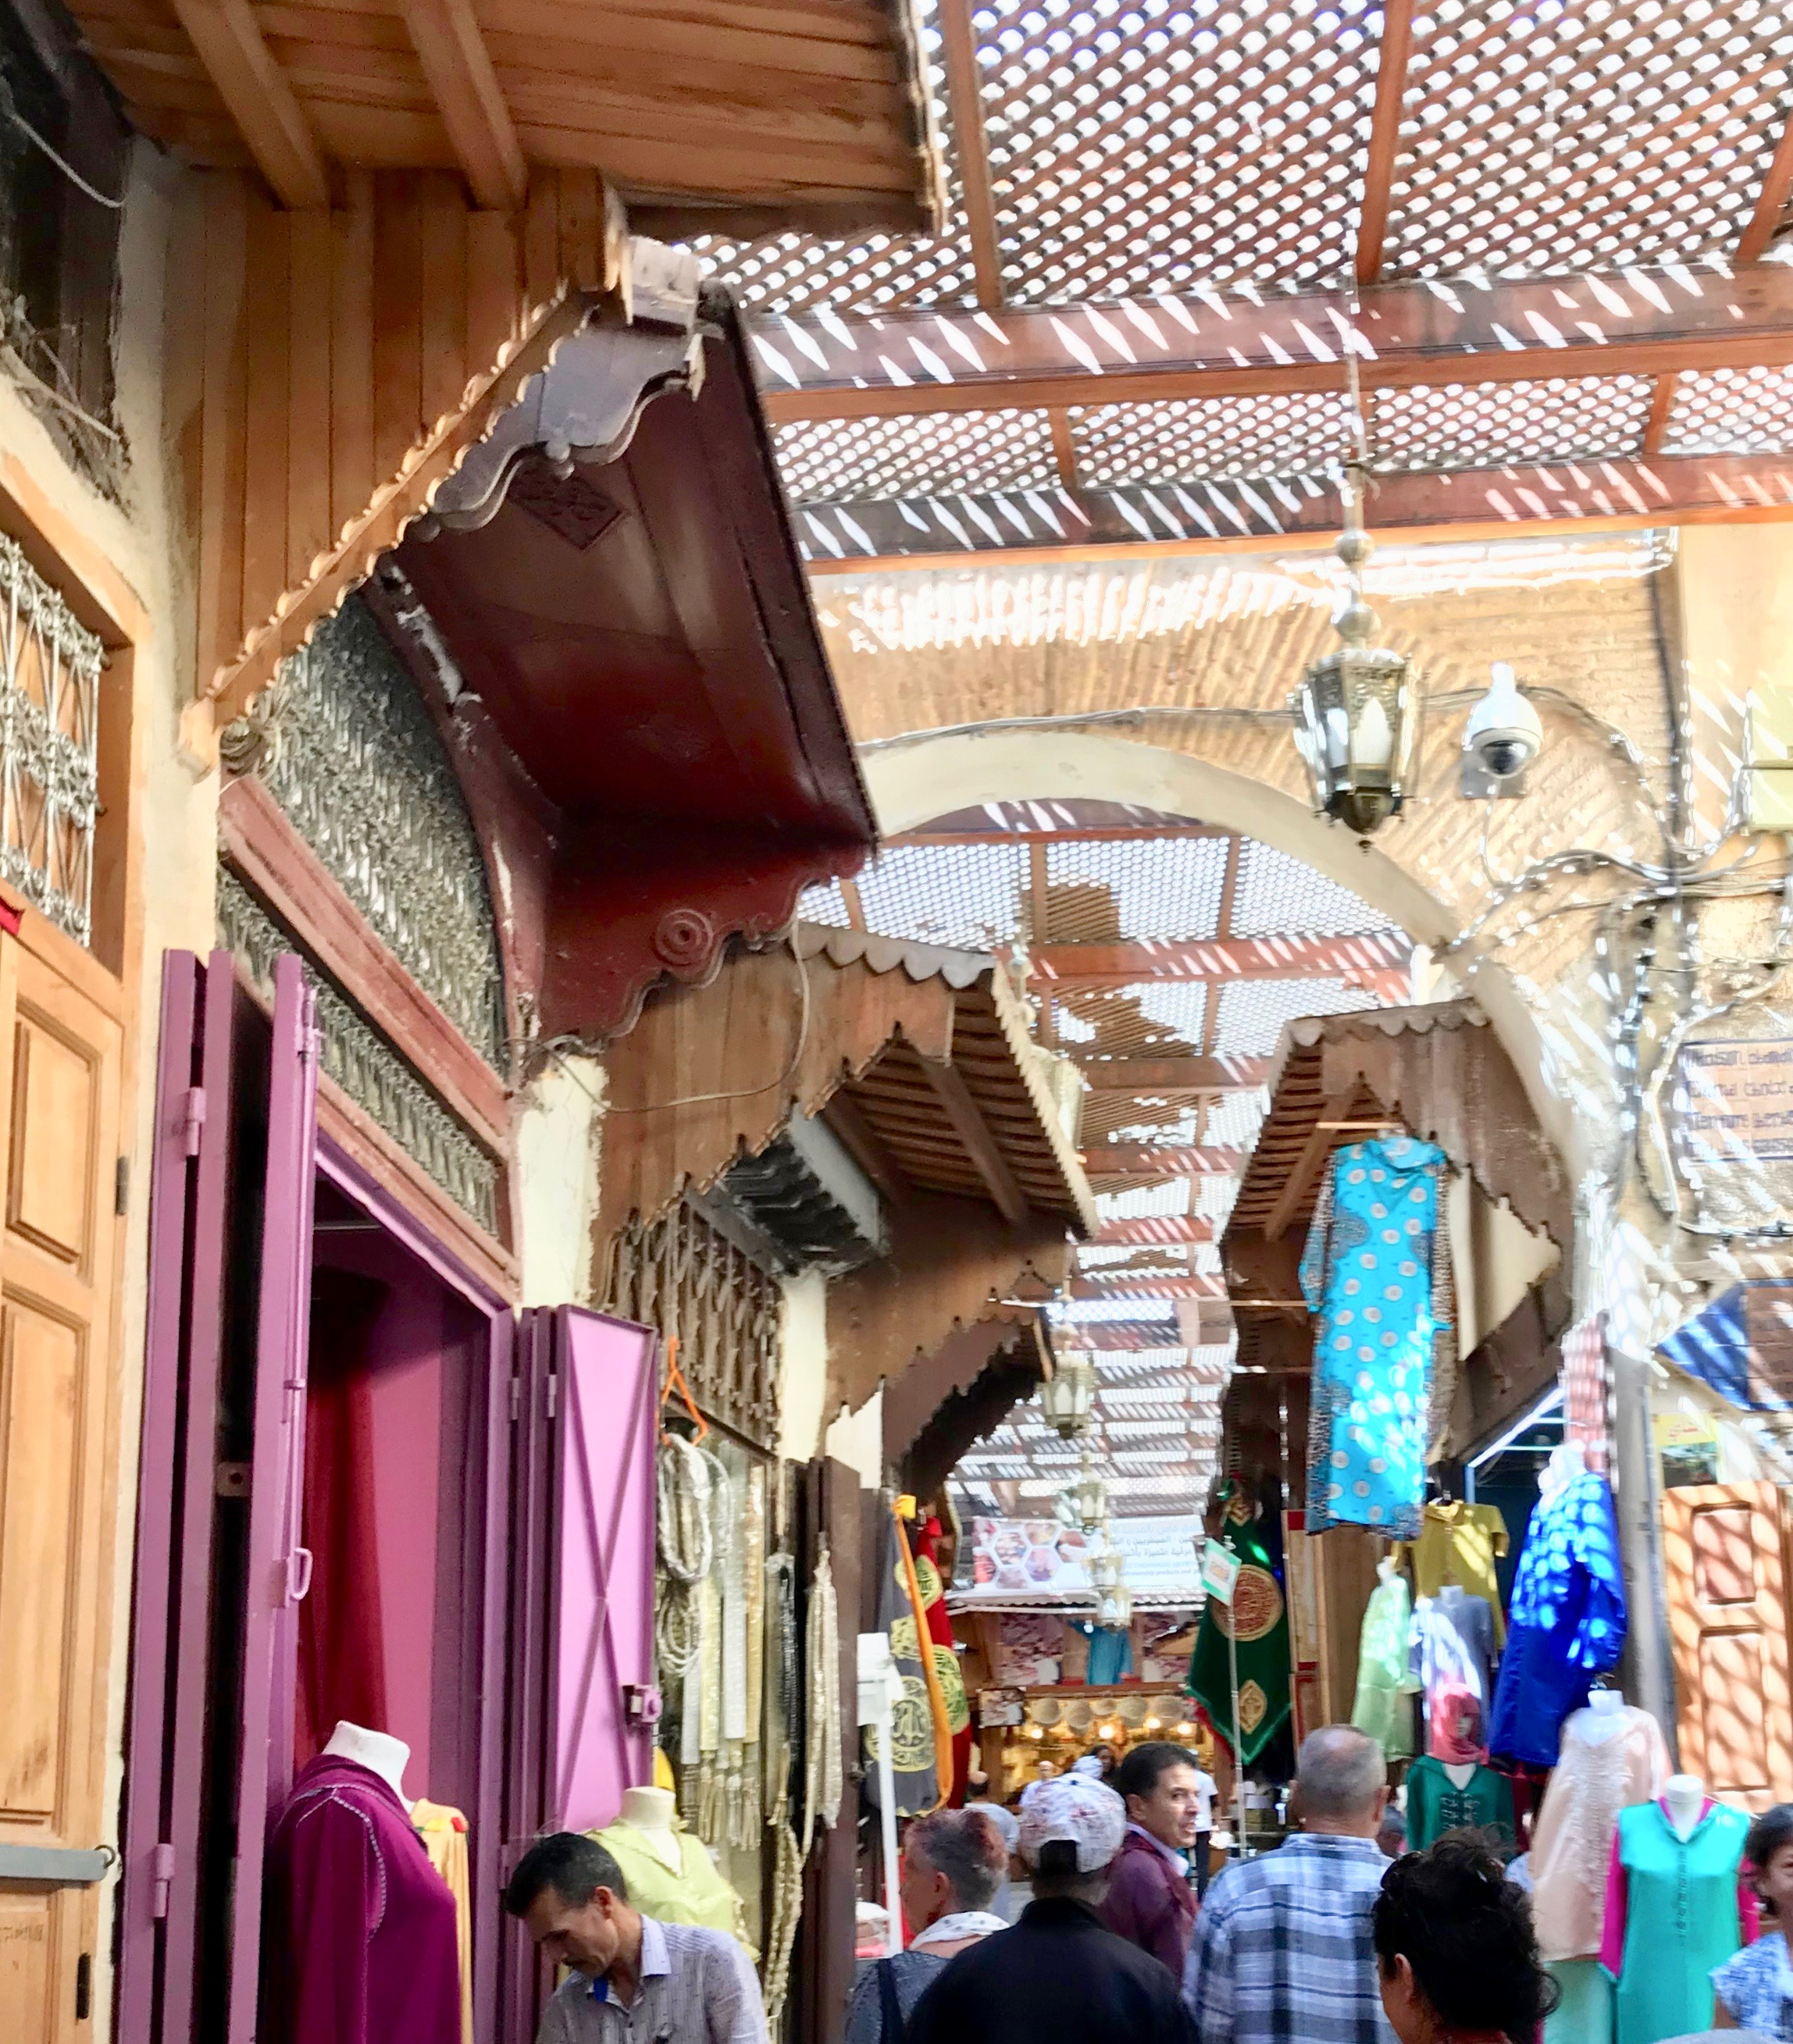 Busy lanes in Fes medina